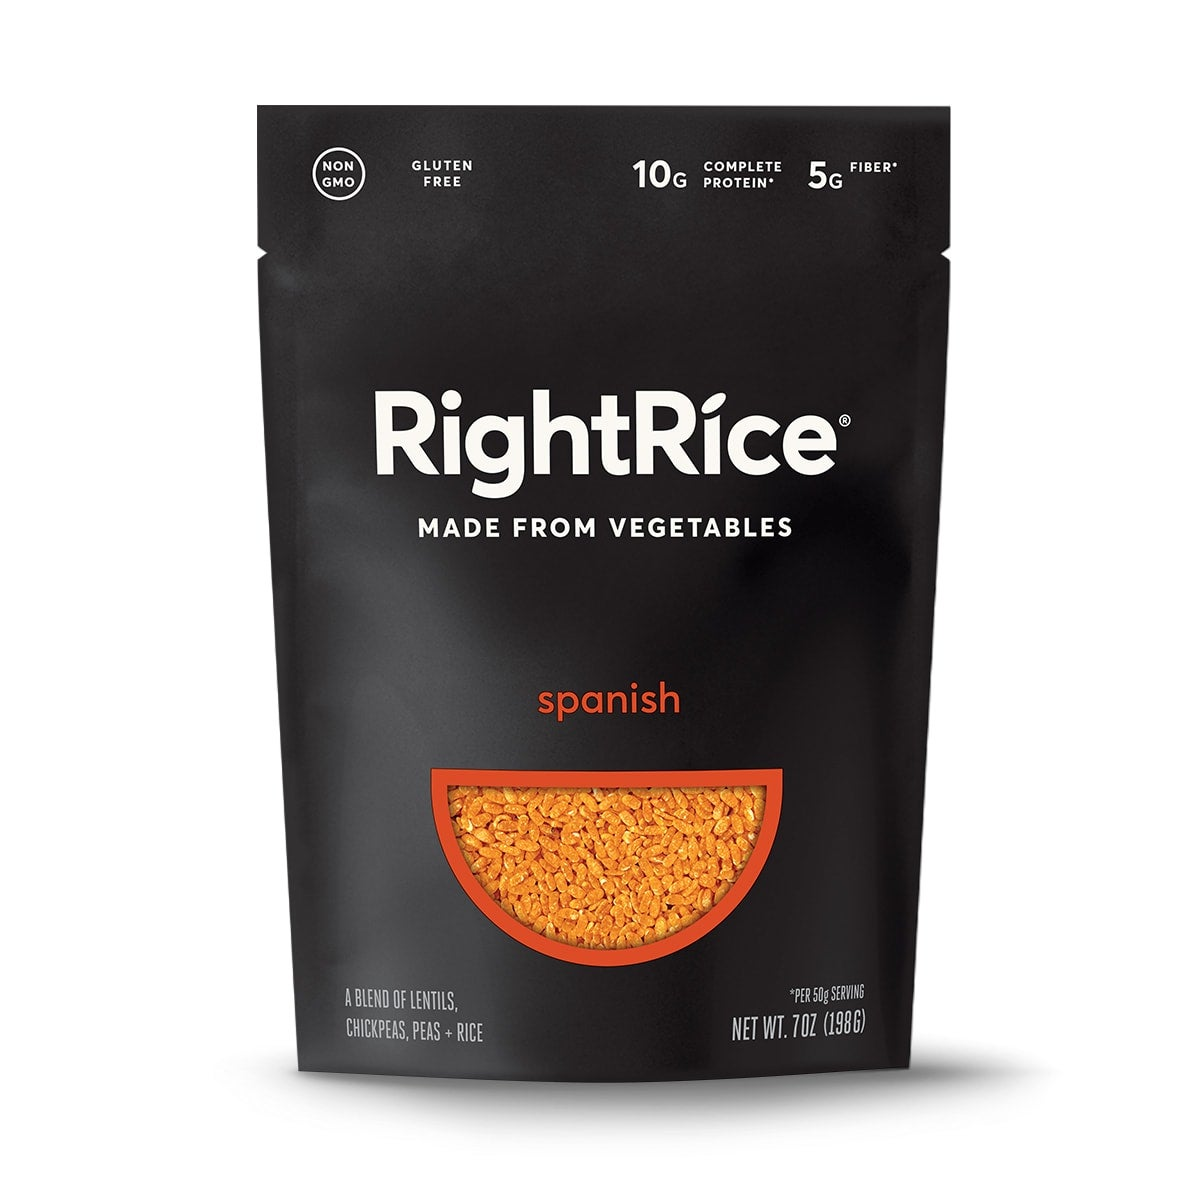 RightRice - Spanish, front of pack, rice made from vegetables, gluten free